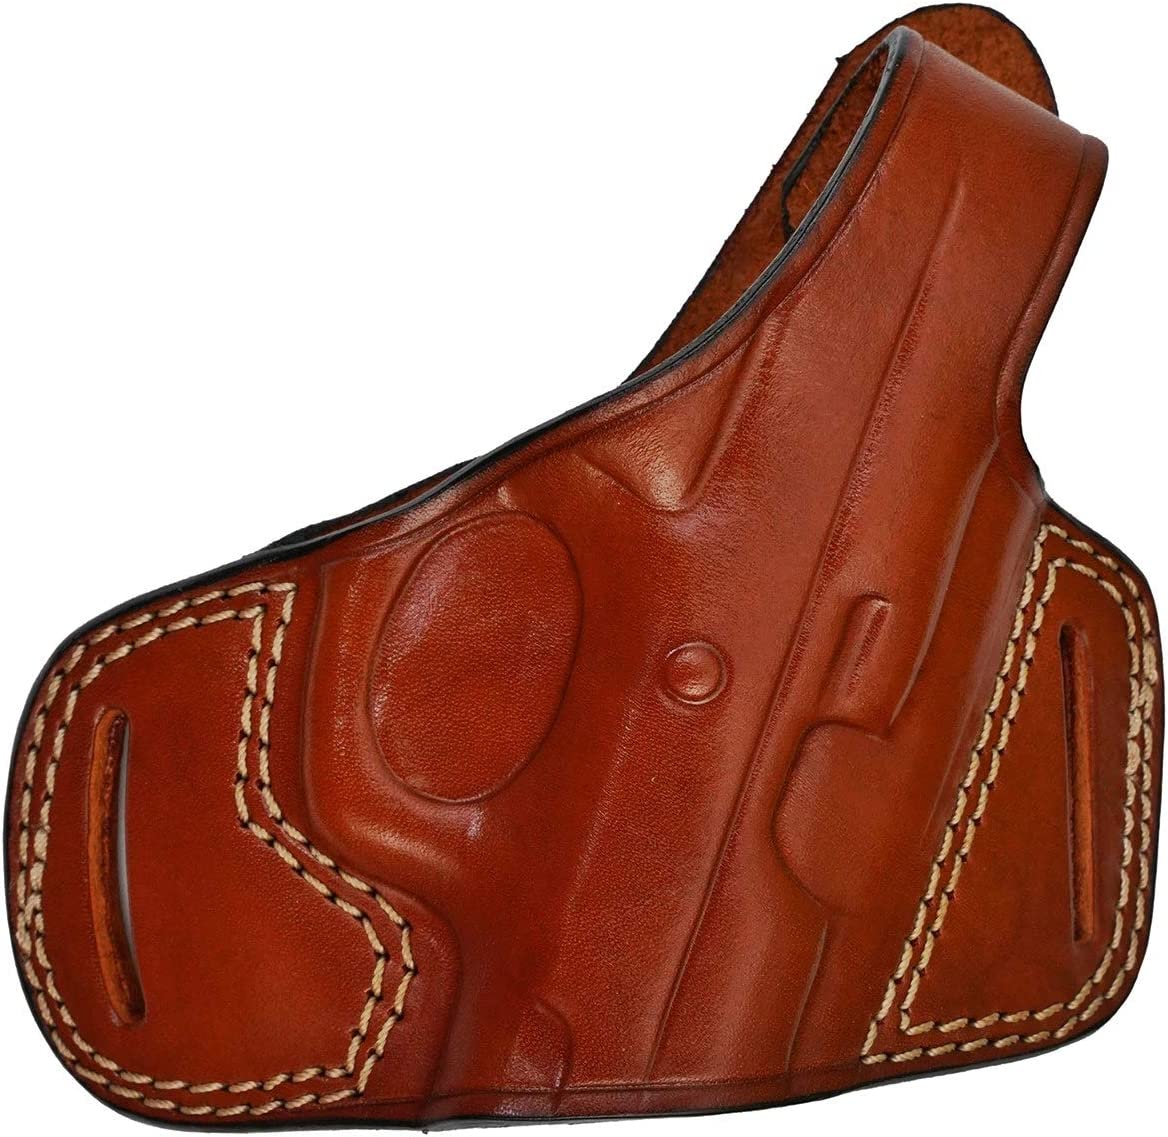 Pancake Leather Holster for Canik specialty shop TP9 - Gen Series Credence Break Thumb